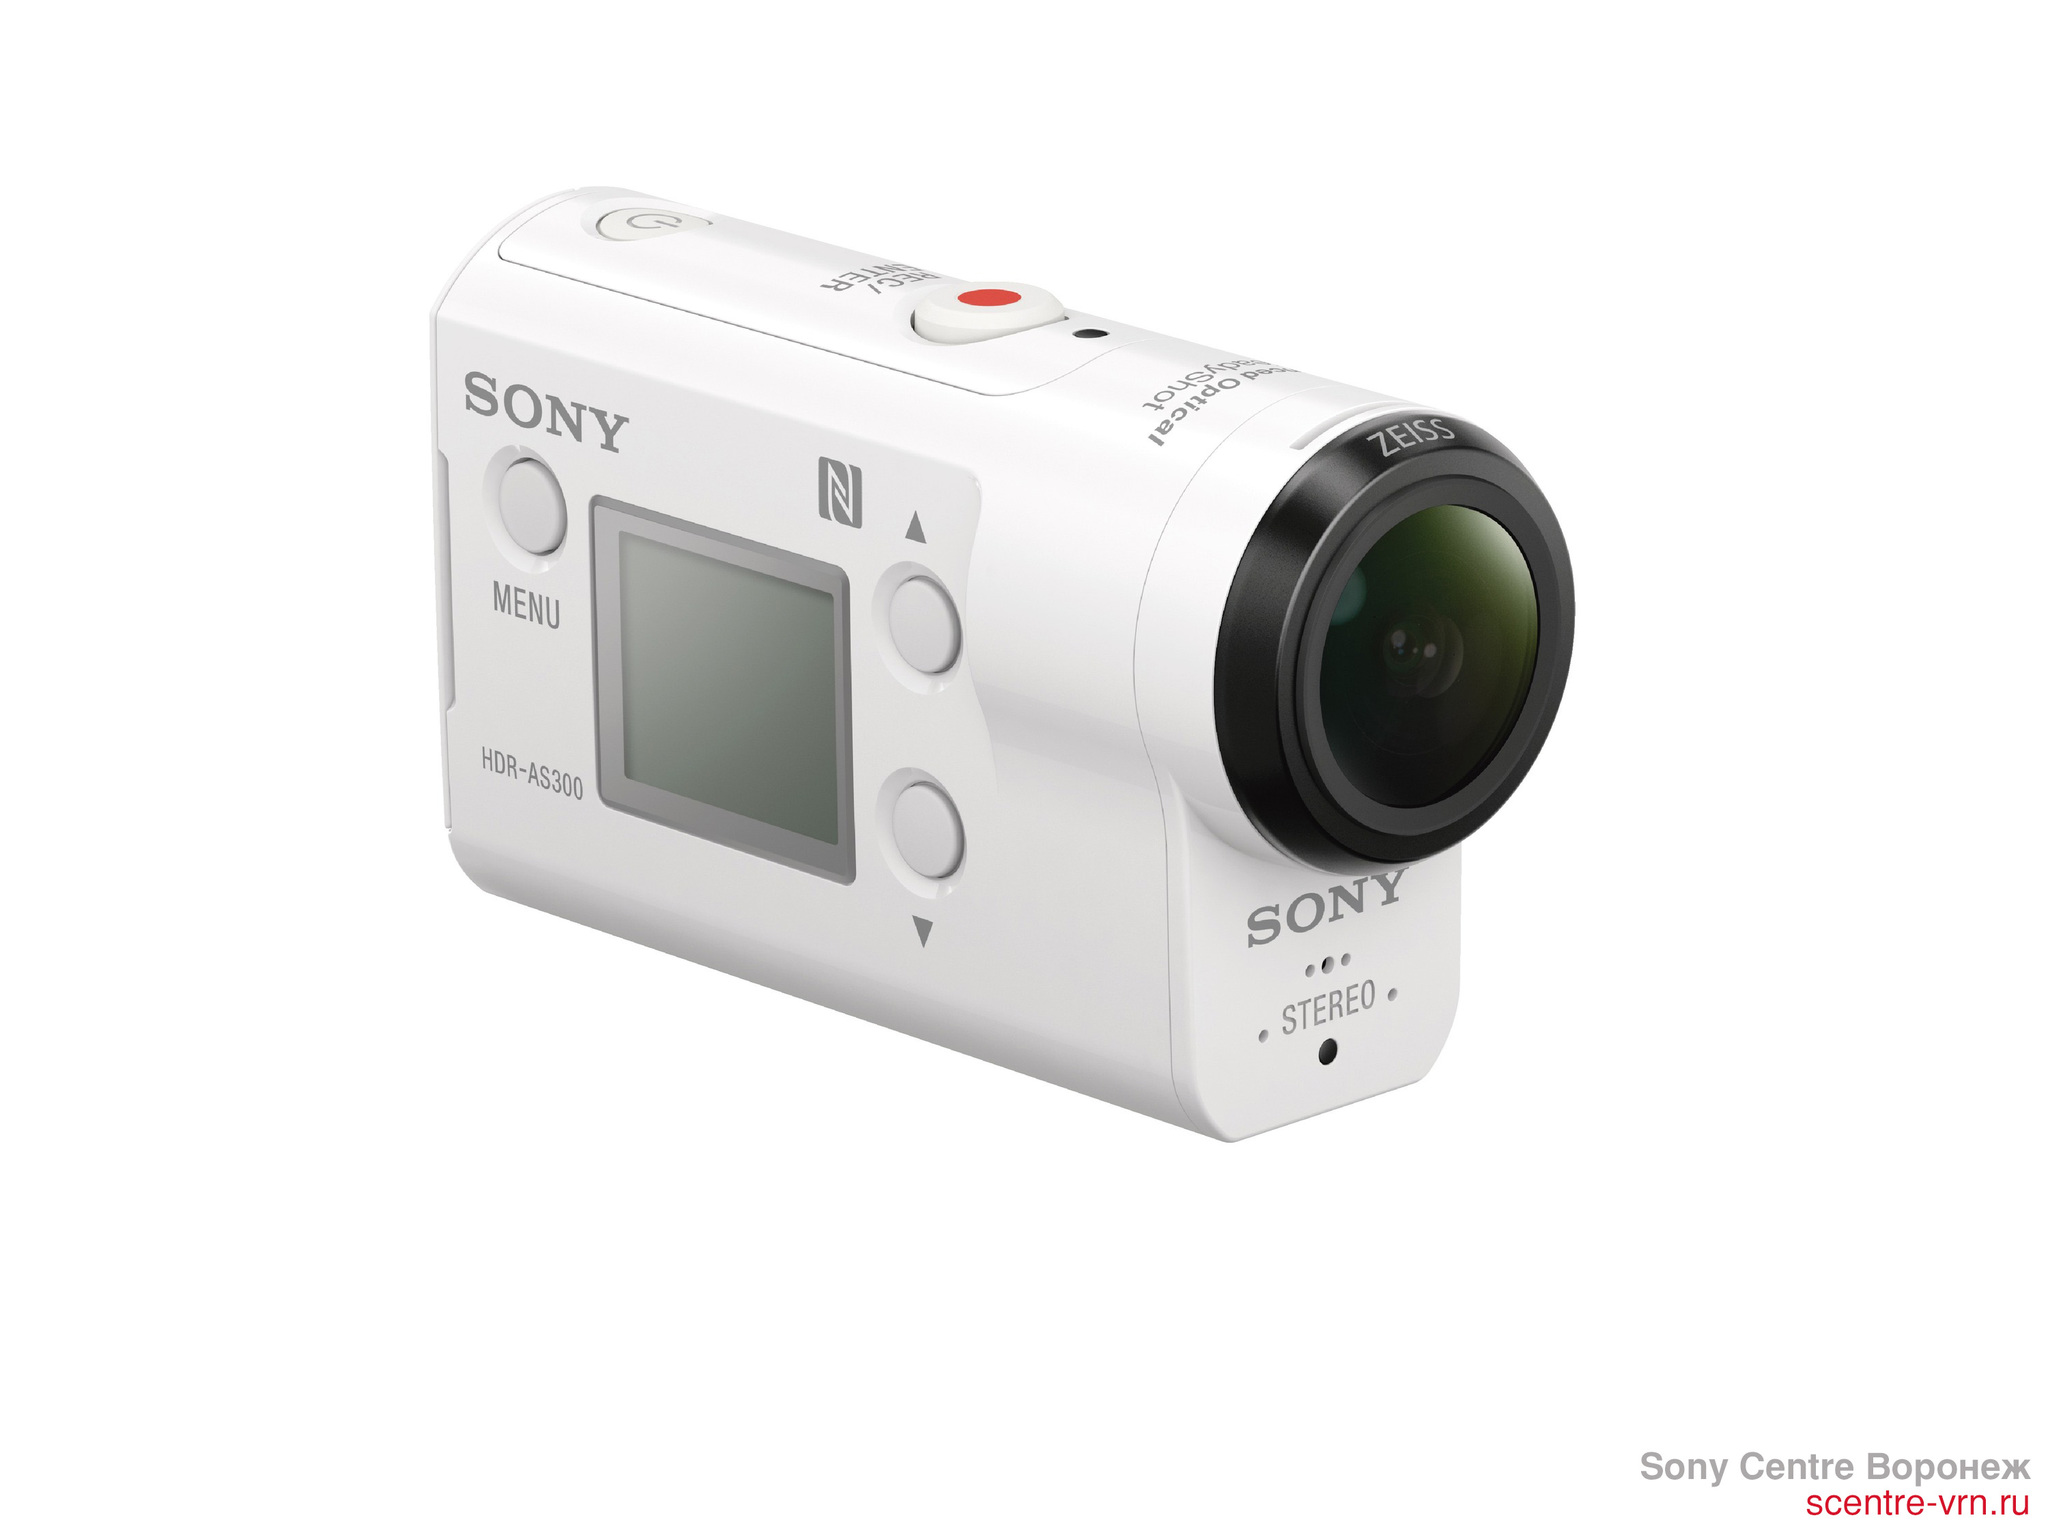 Купить Sony Action Cam HDR-AS300 в Sony Centre Воронеж